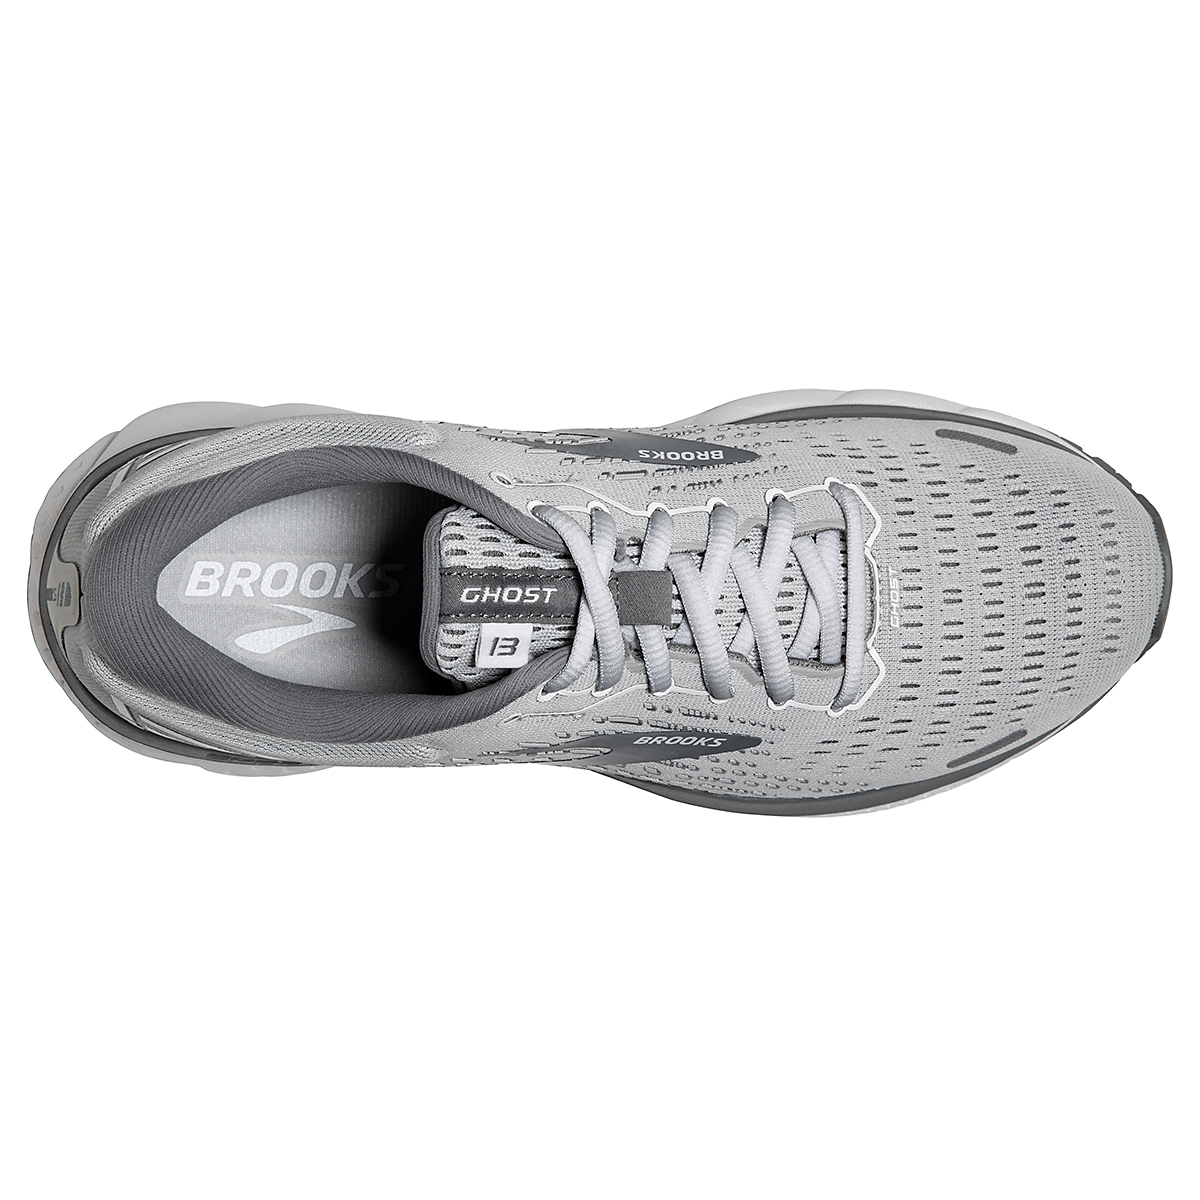 Women's Brooks Ghost 13 Running Shoe - Color: Alloy/Oyster/White - Size: 5 - Width: Regular, Alloy/Oyster/White, large, image 3